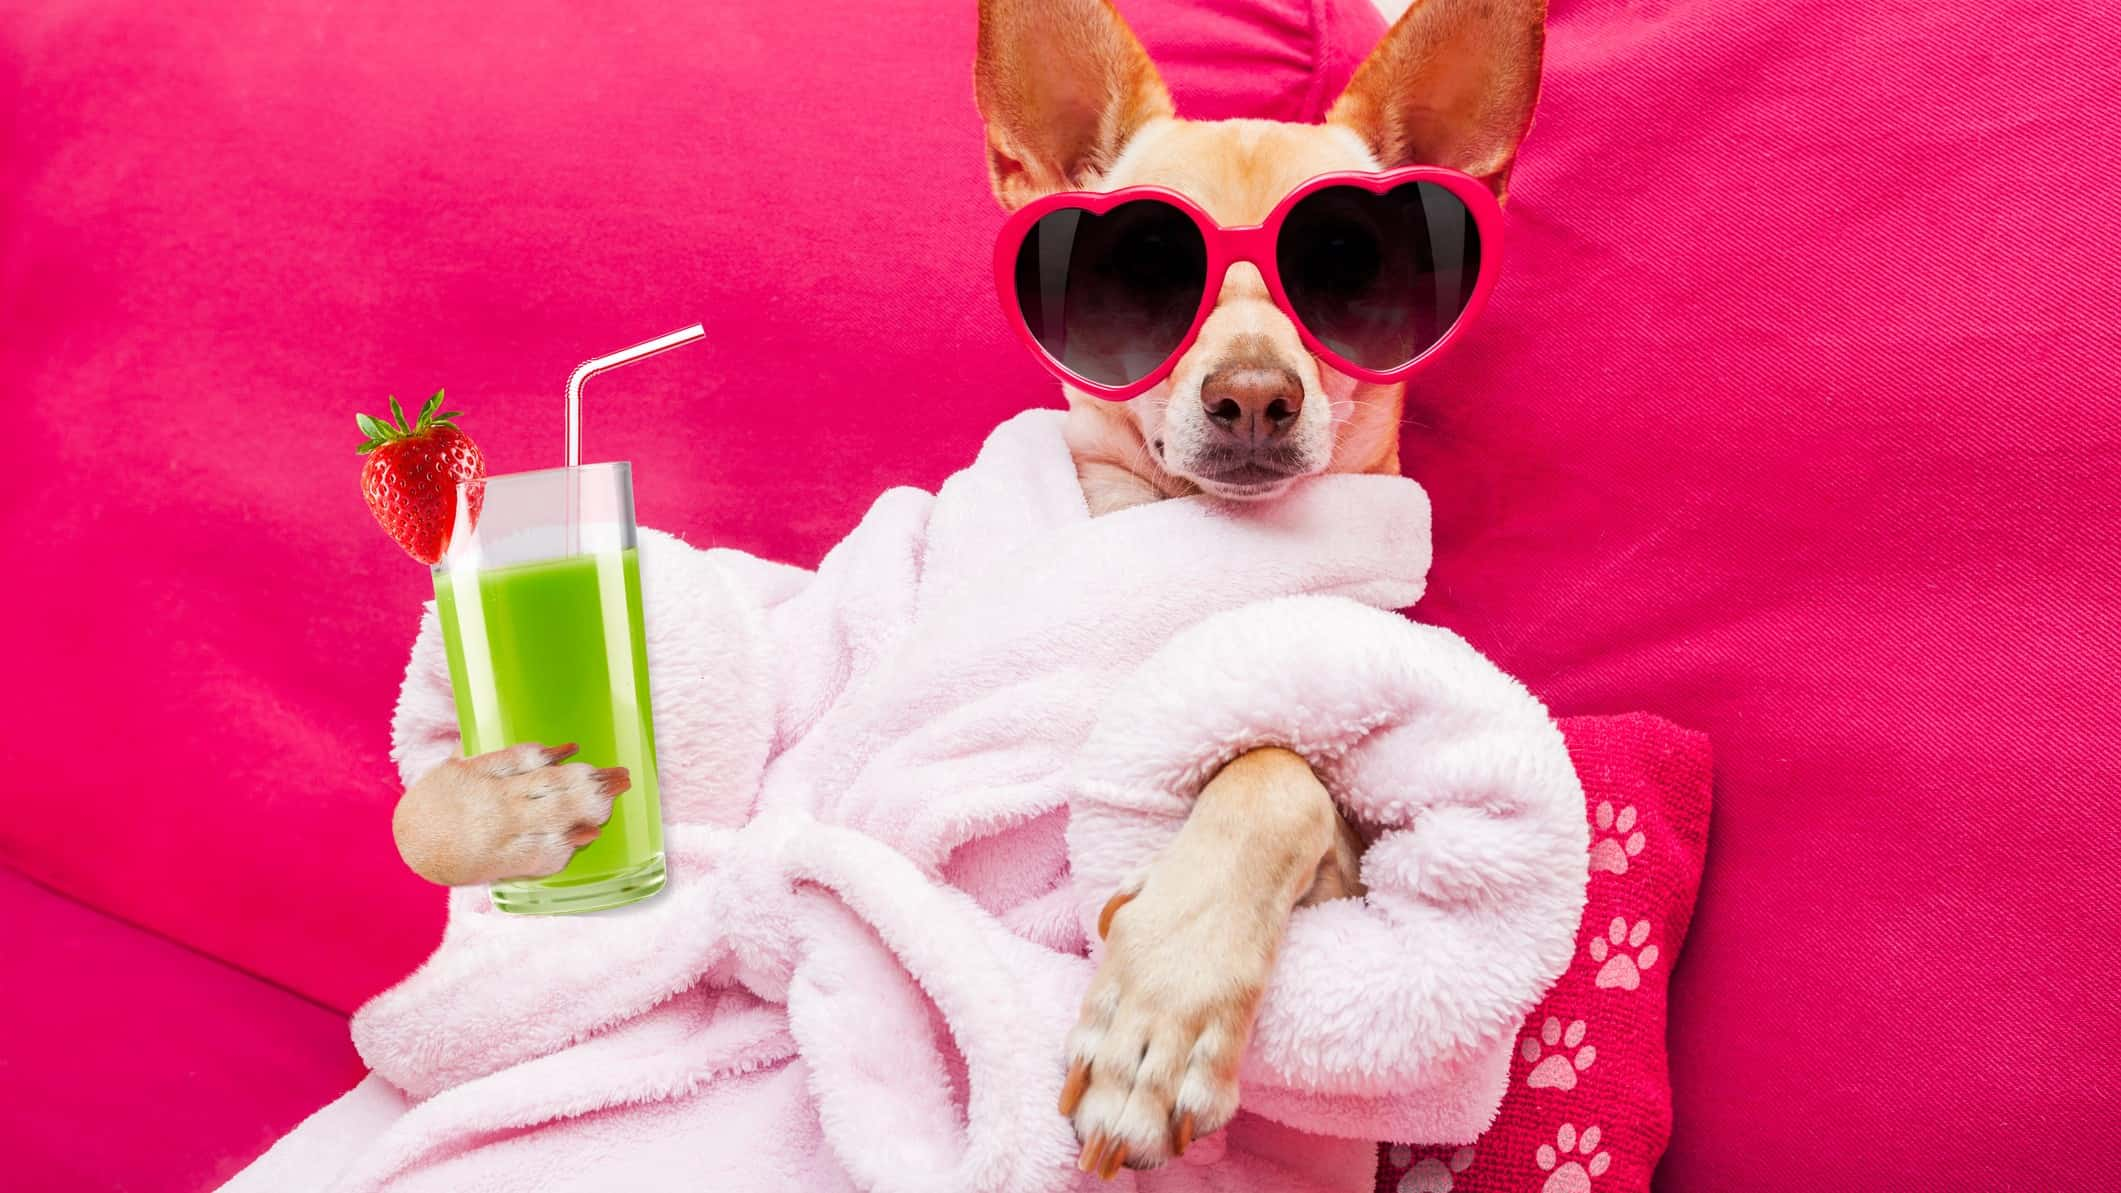 Small dog in bathrobe and wearing sunglasses and holding a green cocktail drink indicating a life of luxury with passive income shares